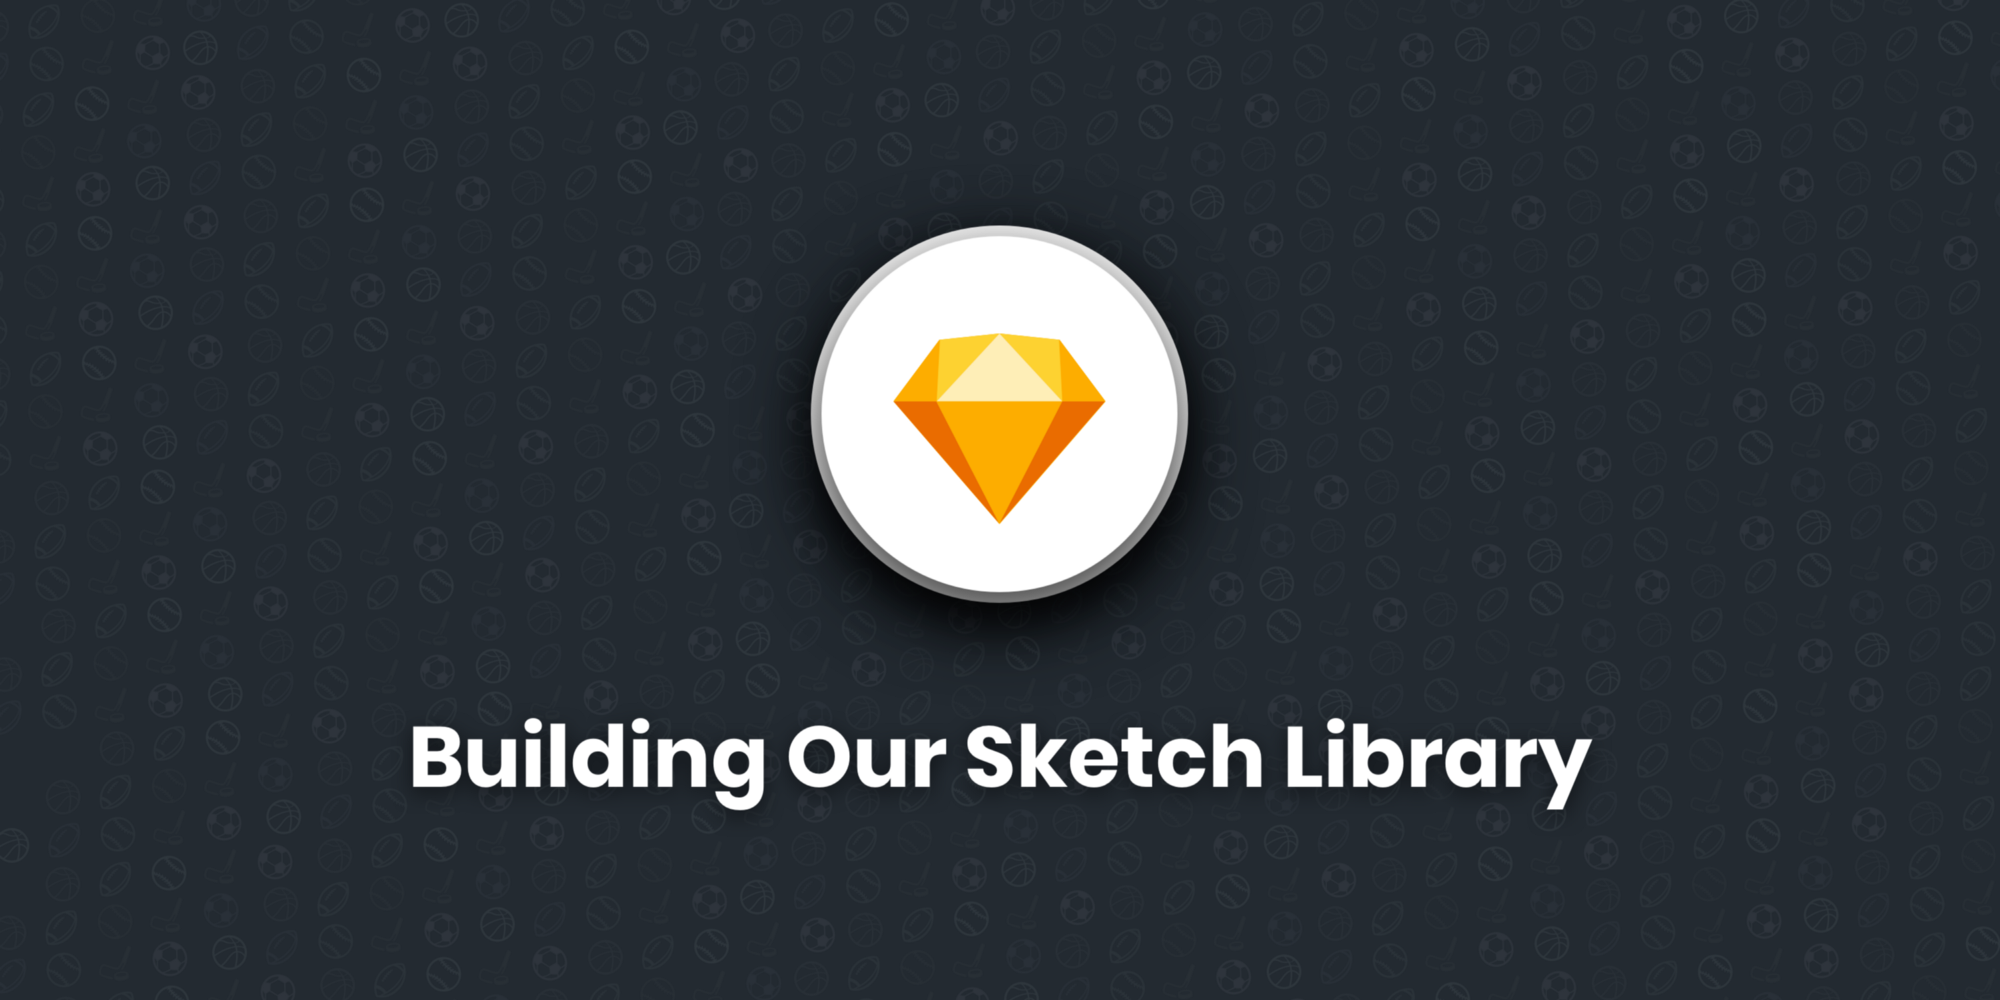 Building our sketch library in the hudl medium version 47 of sketch saw the long awaited introduction of libraries which allows you to sync your symbols globally across all of your sketch files biocorpaavc Images